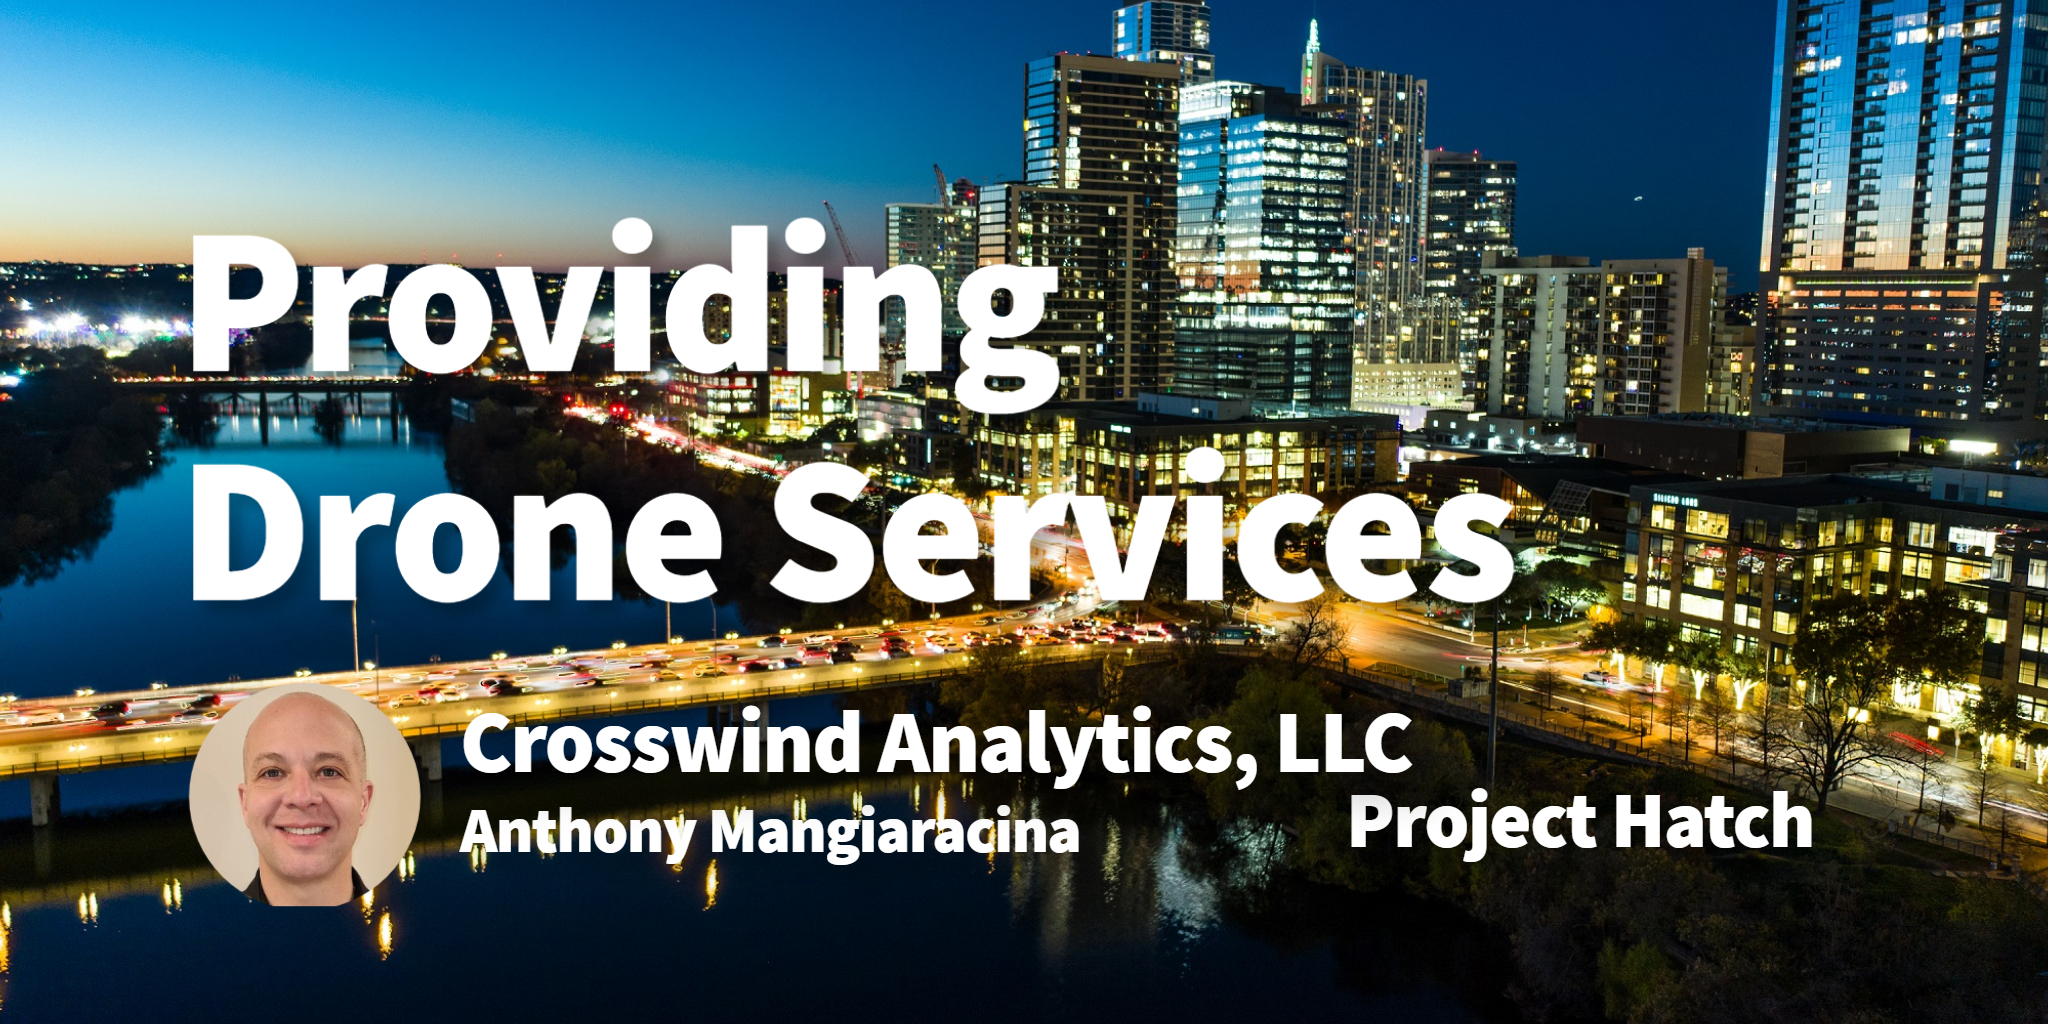 Crosswind Analytics, LLC Anthony Mangiaracina